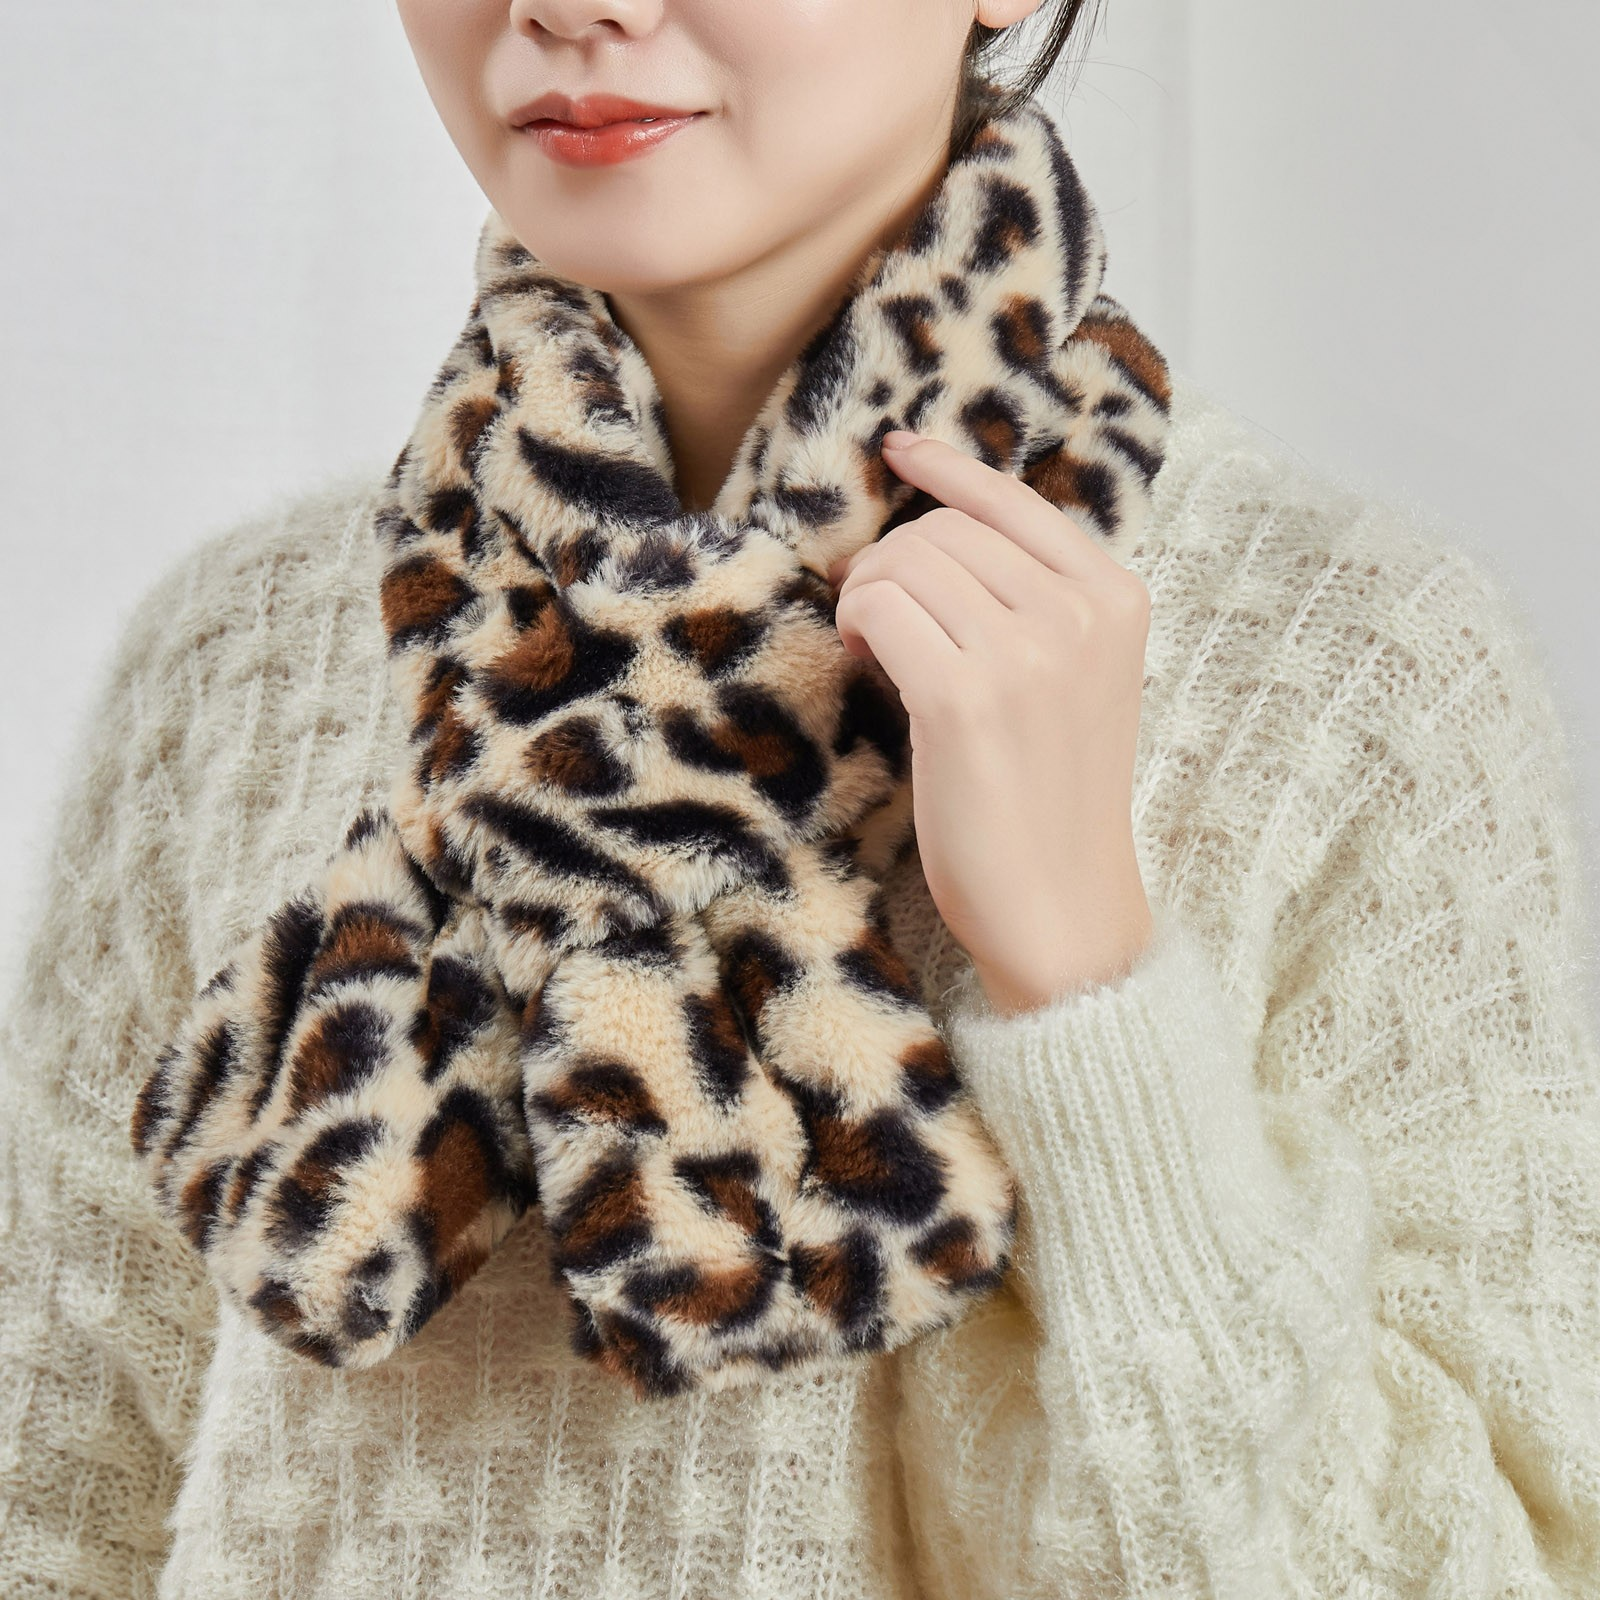 Winter Heating Warm Floral Print Neck Protection Scarf Female Electric Protective Shoulder Waterproof Шарфы Женские #T2G